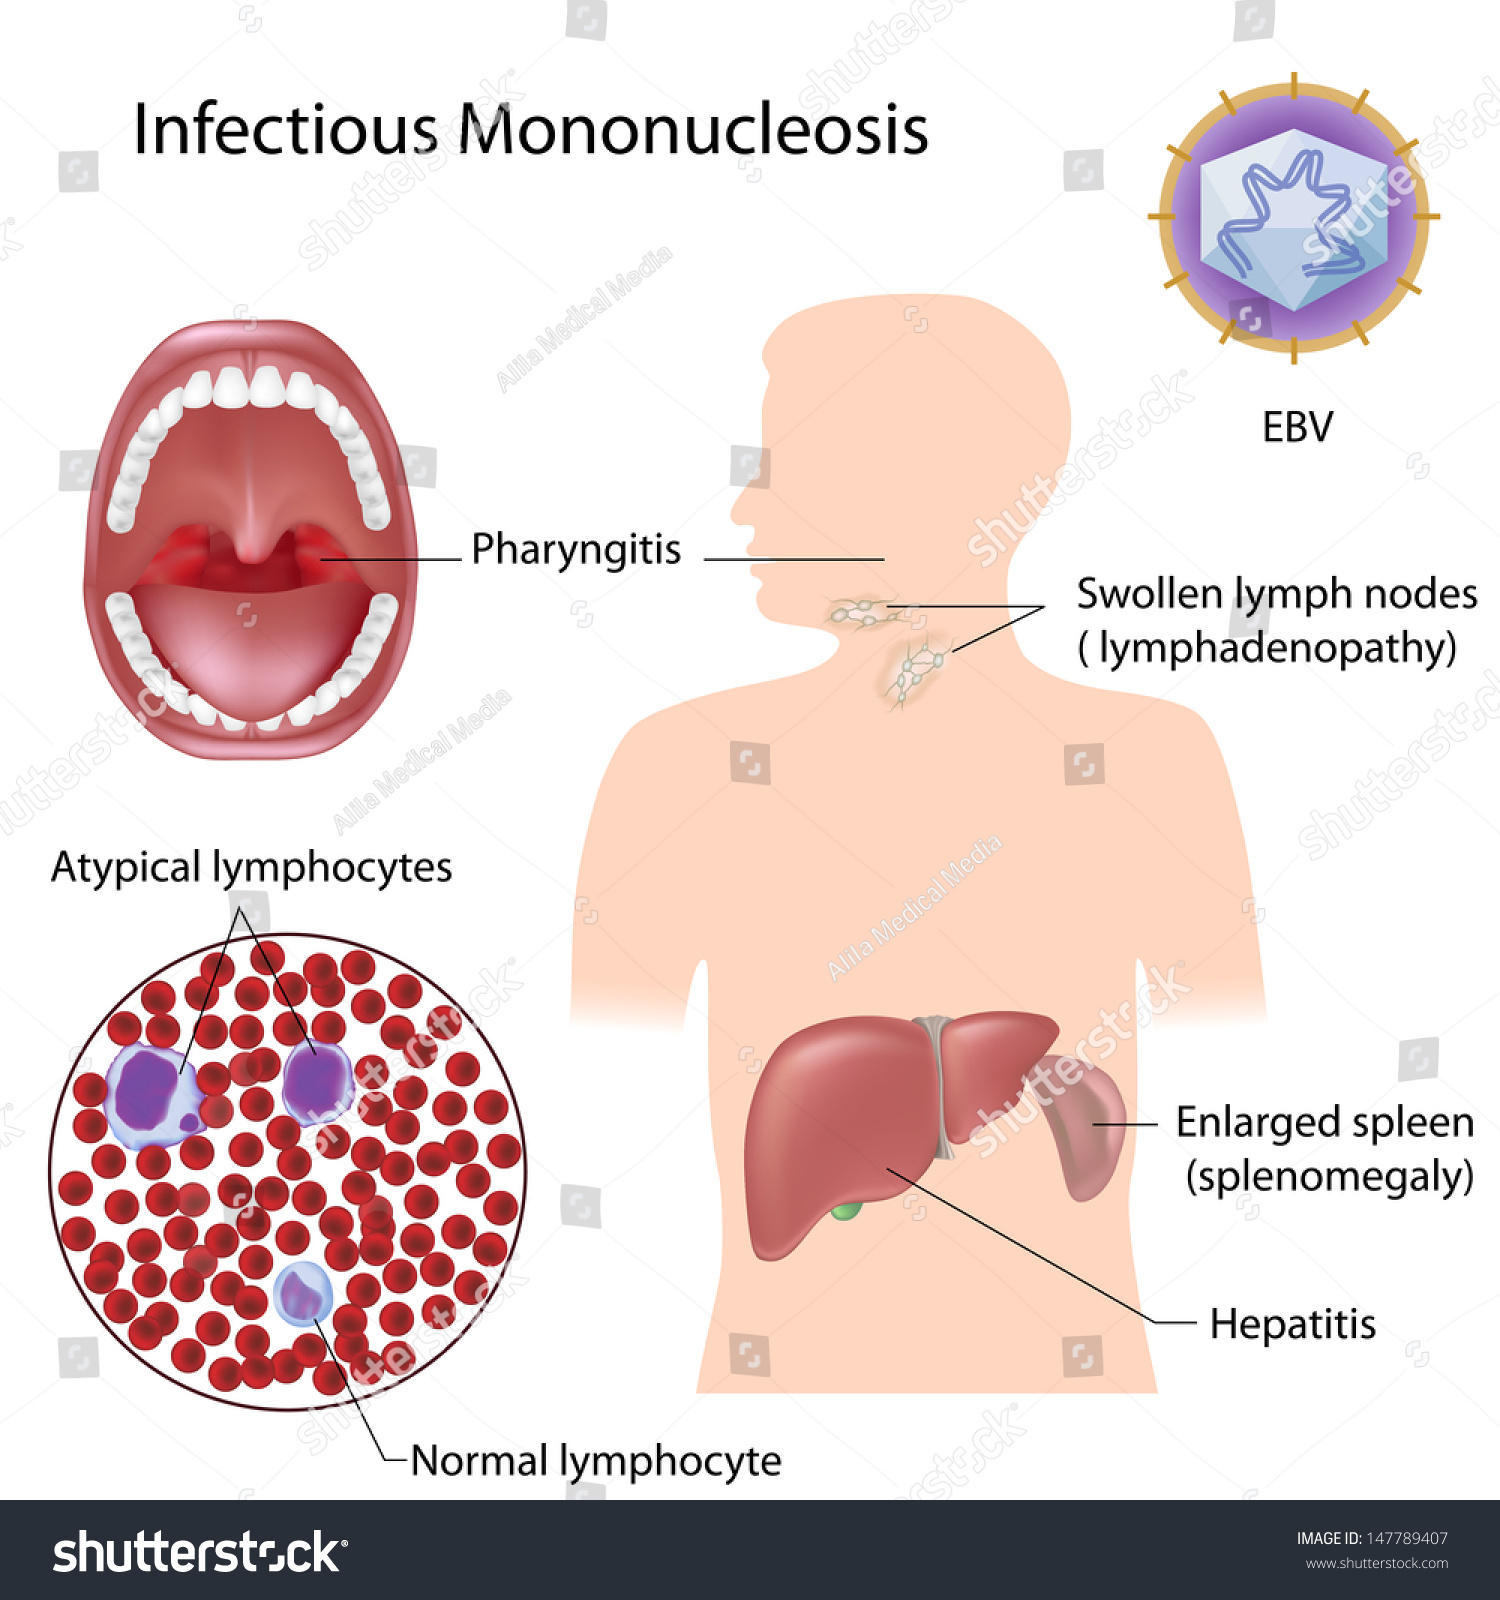 mononucleosis paper Mononucleosis is an infectious viral disease that affects millions of people every year this disease is often referred to as the kissing disease there is no known cure for mononucleosis but there are preventative measures.